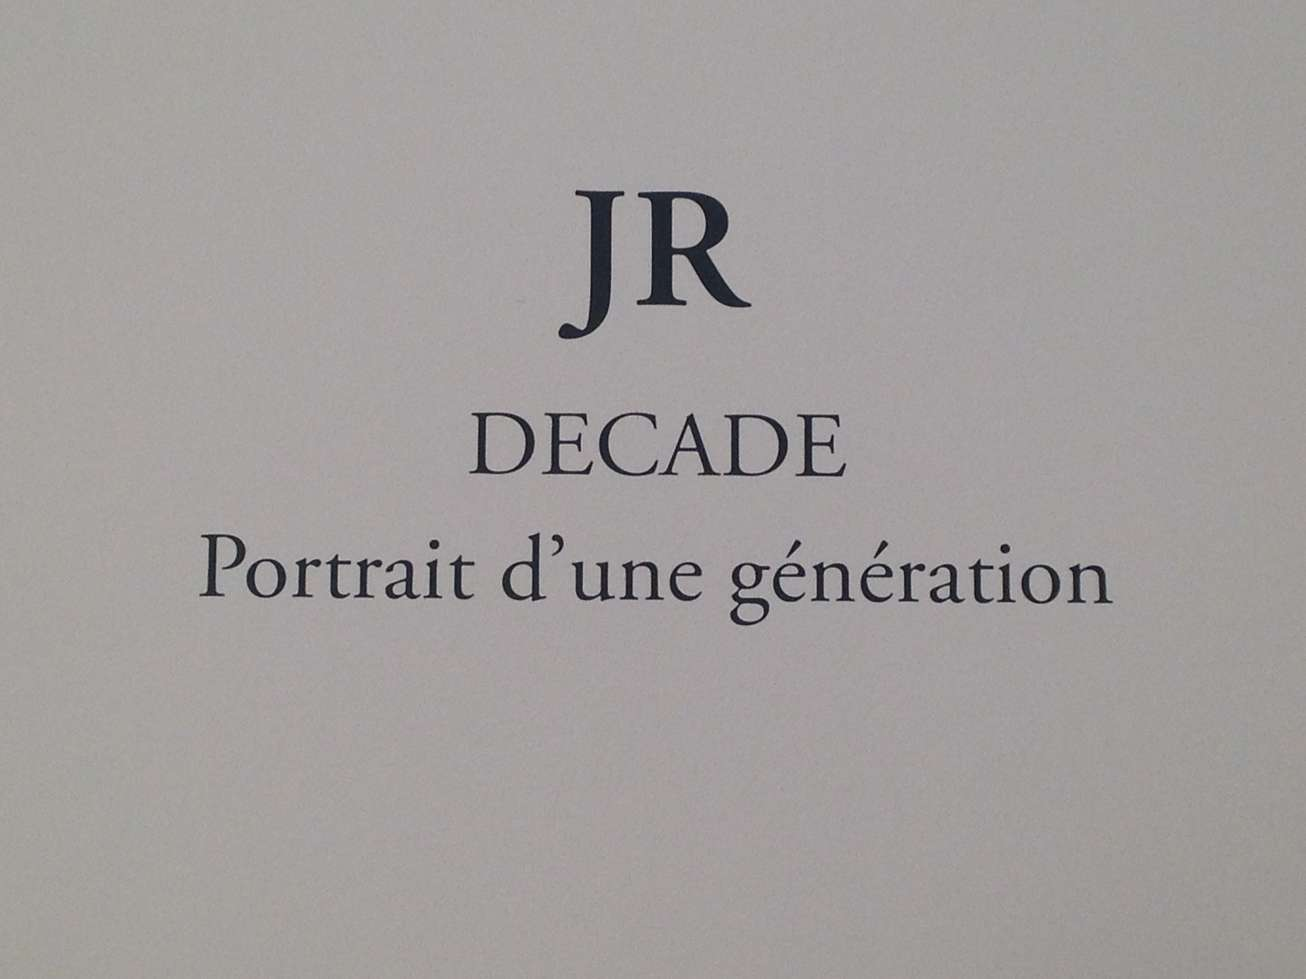 jr-decade-galerie-perrotin-paris-porcelaine-bernardaud-limoges-restaurarte-restauration-art-contemporain.jpg